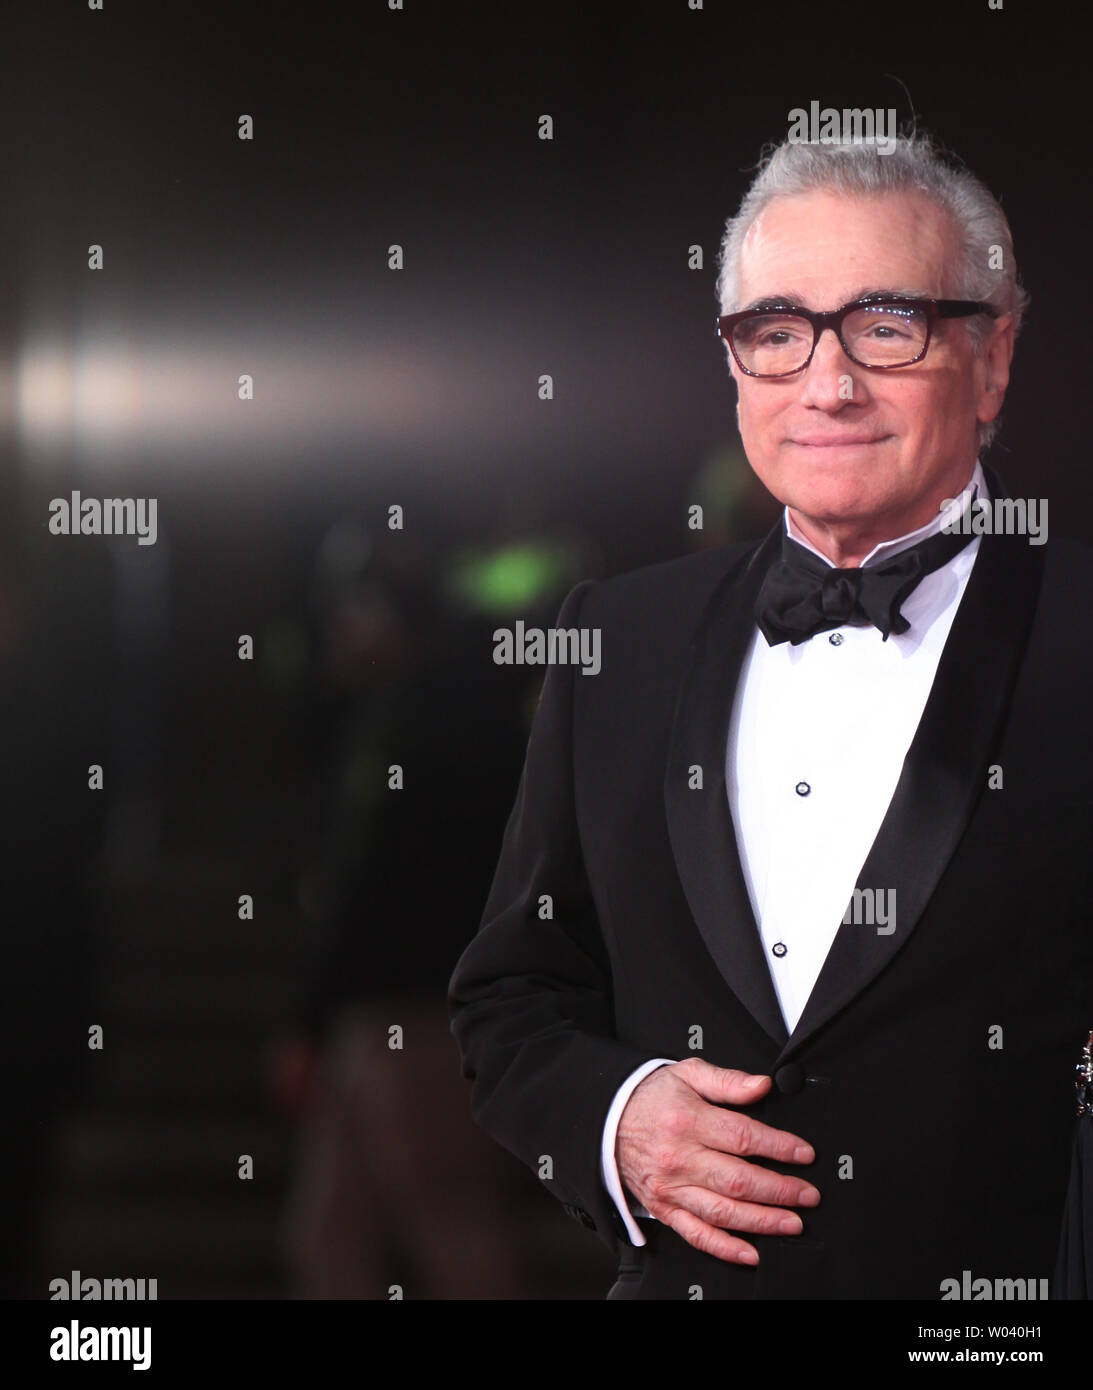 Martin Scorsese arrives on the red carpet before the screening of a digitally restored version of the 1960 classic film 'La Dolce Vita' during the 5th Rome International Film Festival in Rome on October 30, 2010.   UPI/David Silpa - Stock Image